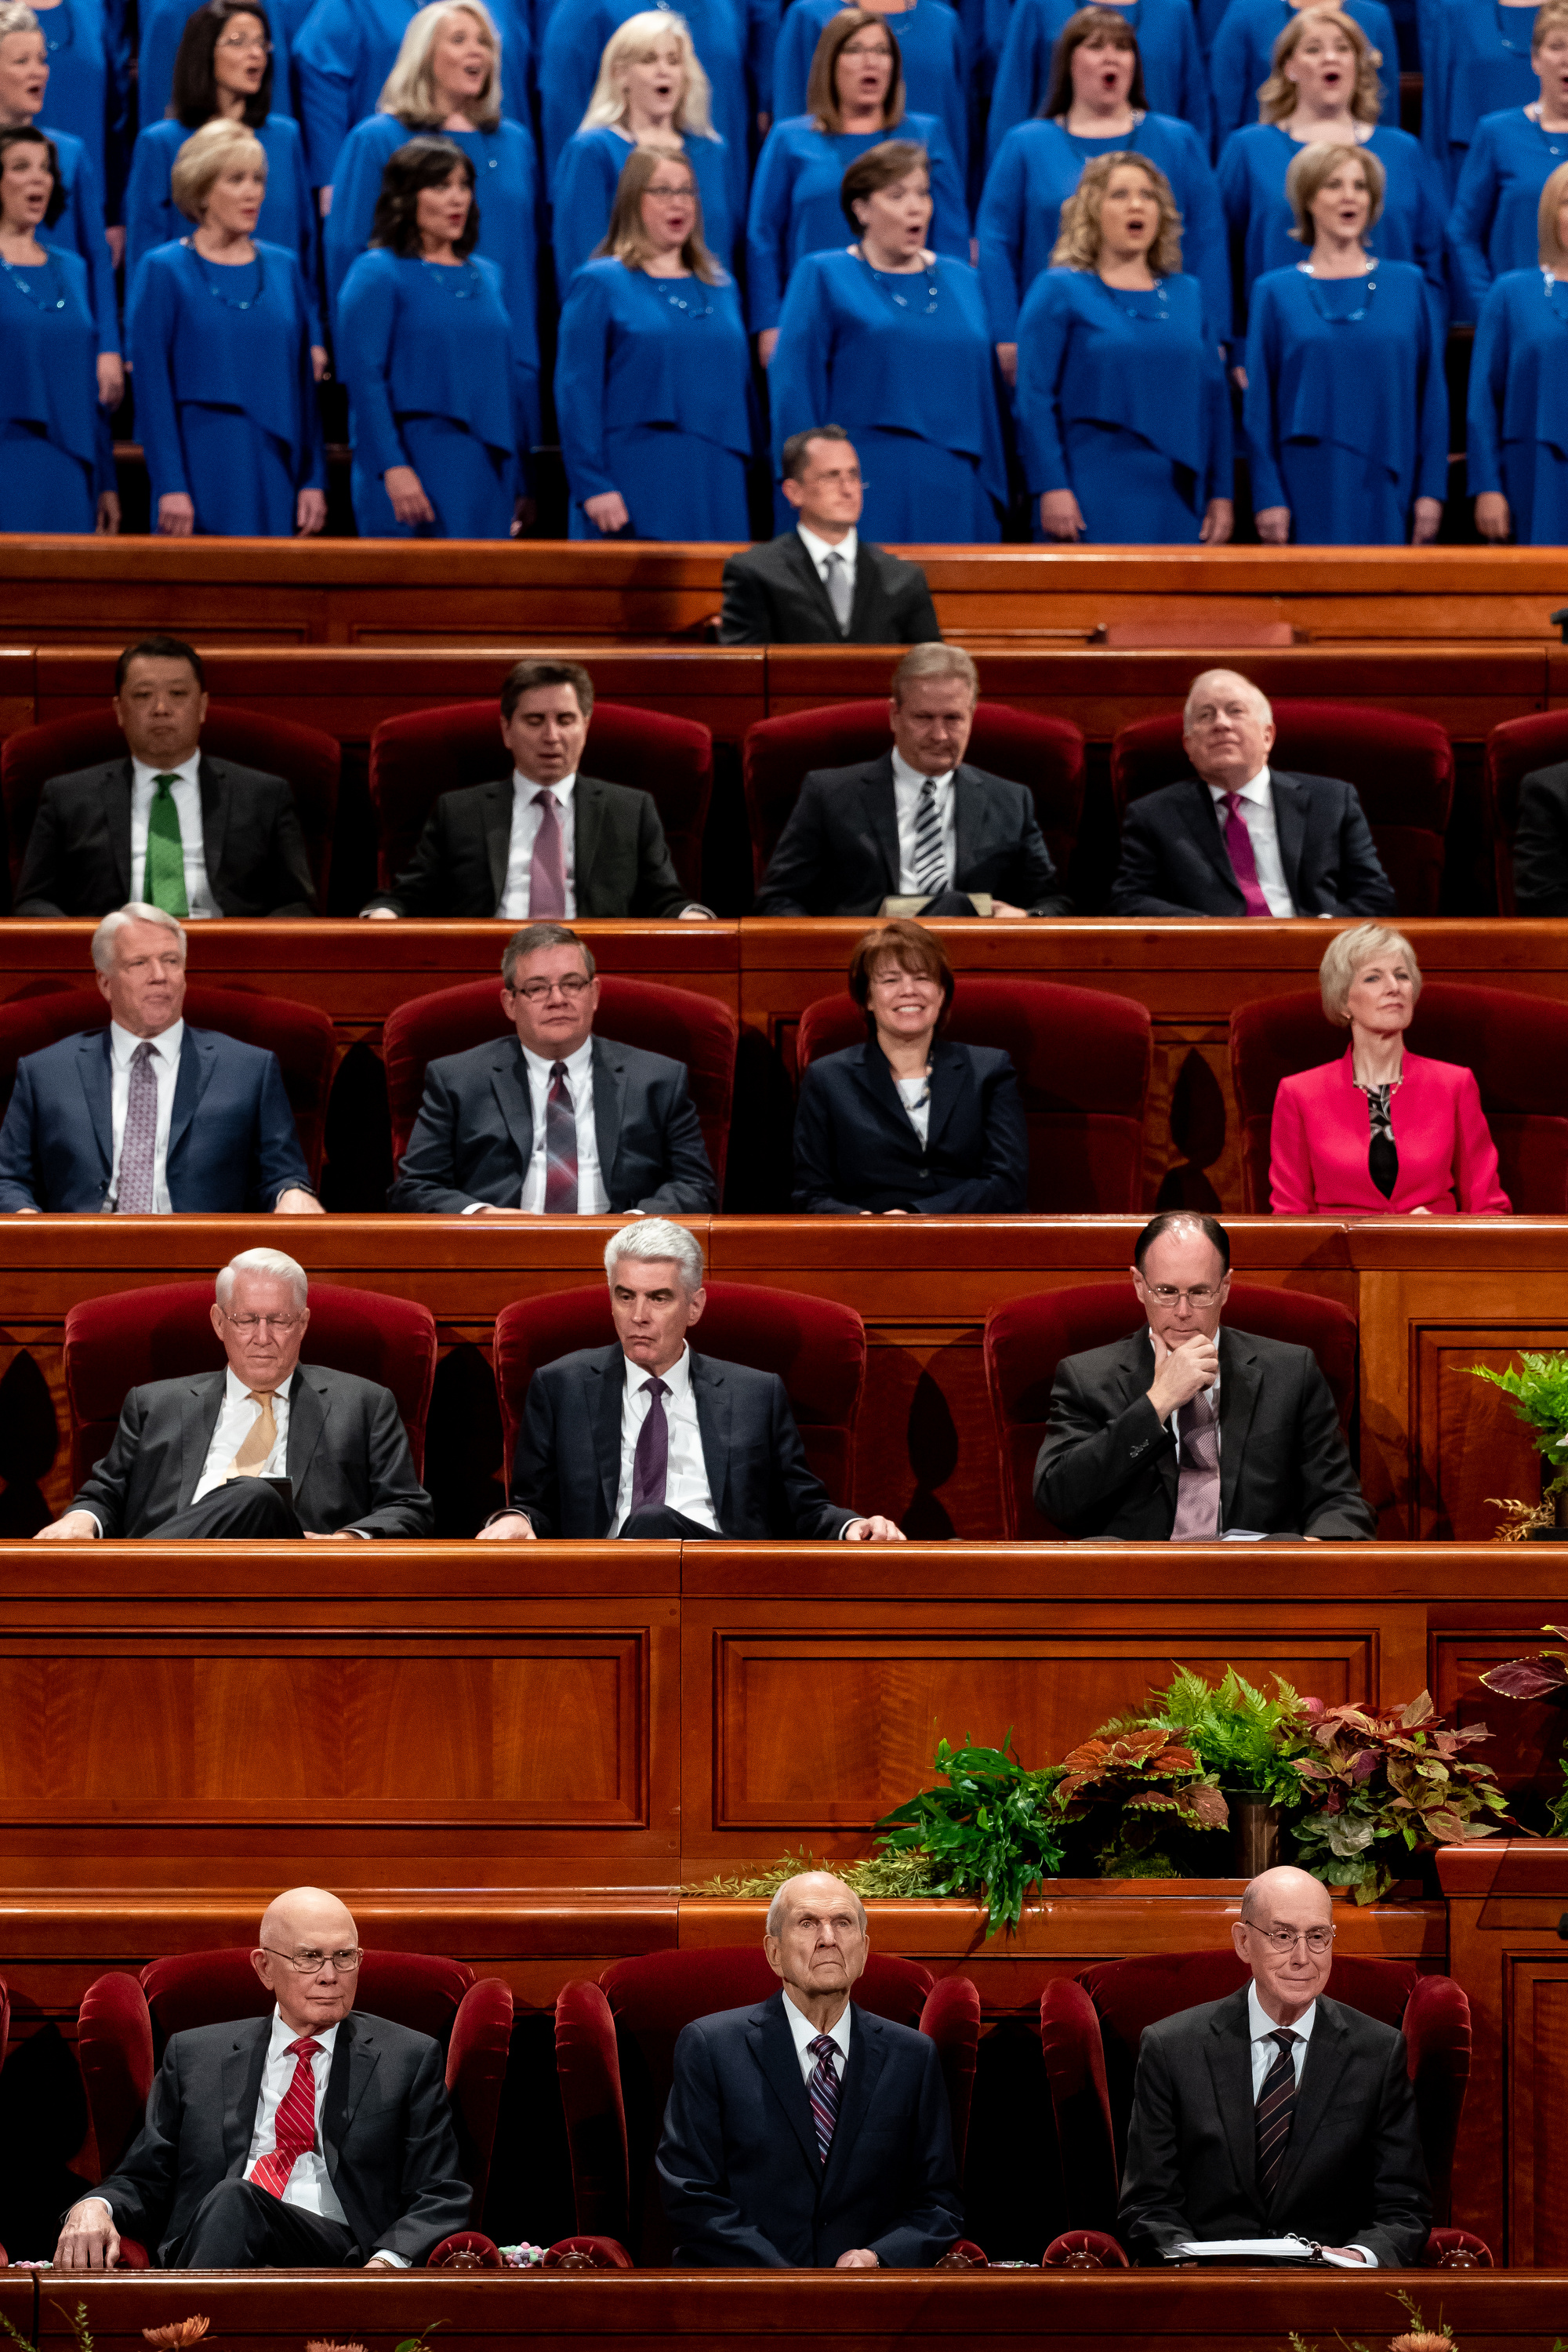 President Russell M. Nelson, center, President Dallin H. Oaks, first counselor in the First Presidency, left, and President Henry B. Eyring, second counselor in the First Presidency, right, take their seats at the start of the Saturday morning session of the 189th Semiannual General Conference of The Church of Jesus Christ of Latter-day Saints at the Conference Center in Salt Lake City on Saturday, Oct. 5, 2019.